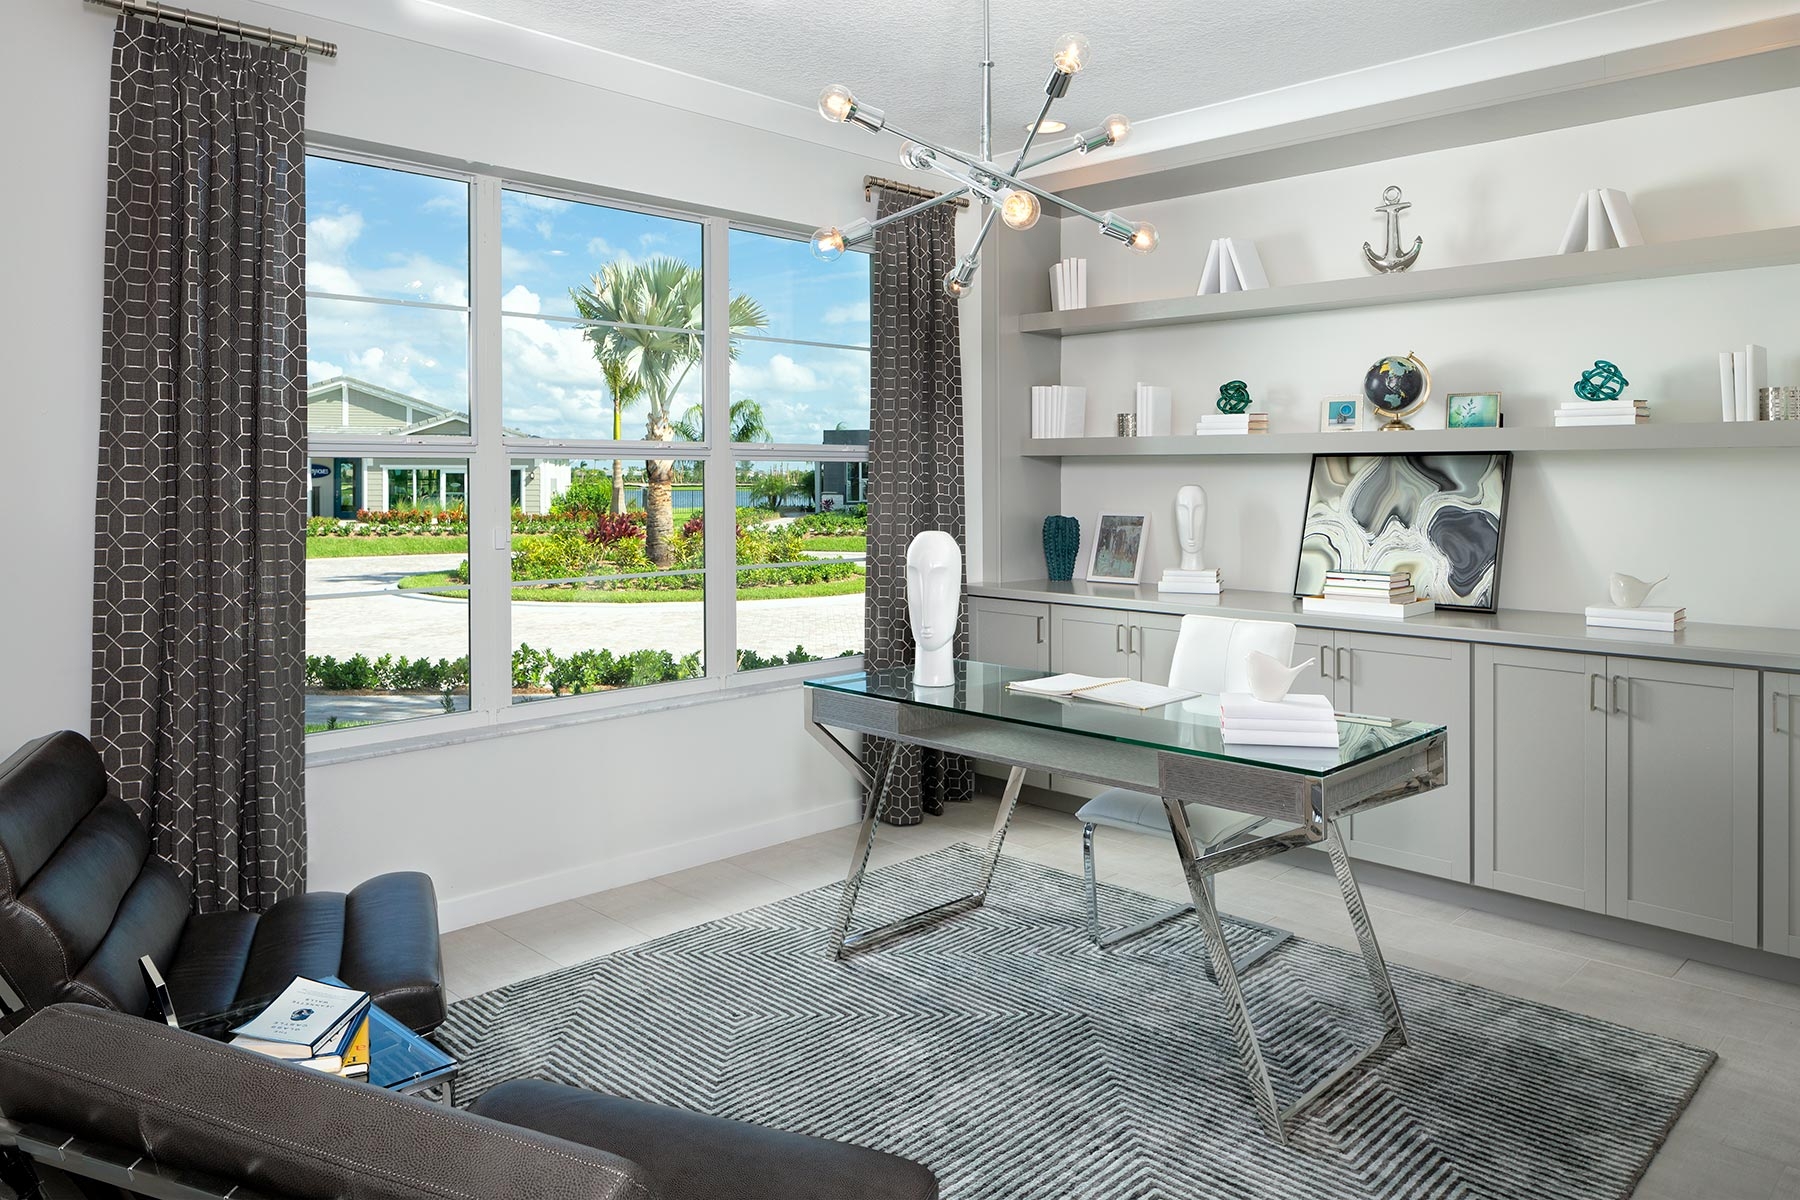 Tradition - Manderlie Study Room in Port St. Lucie Florida by Mattamy Homes